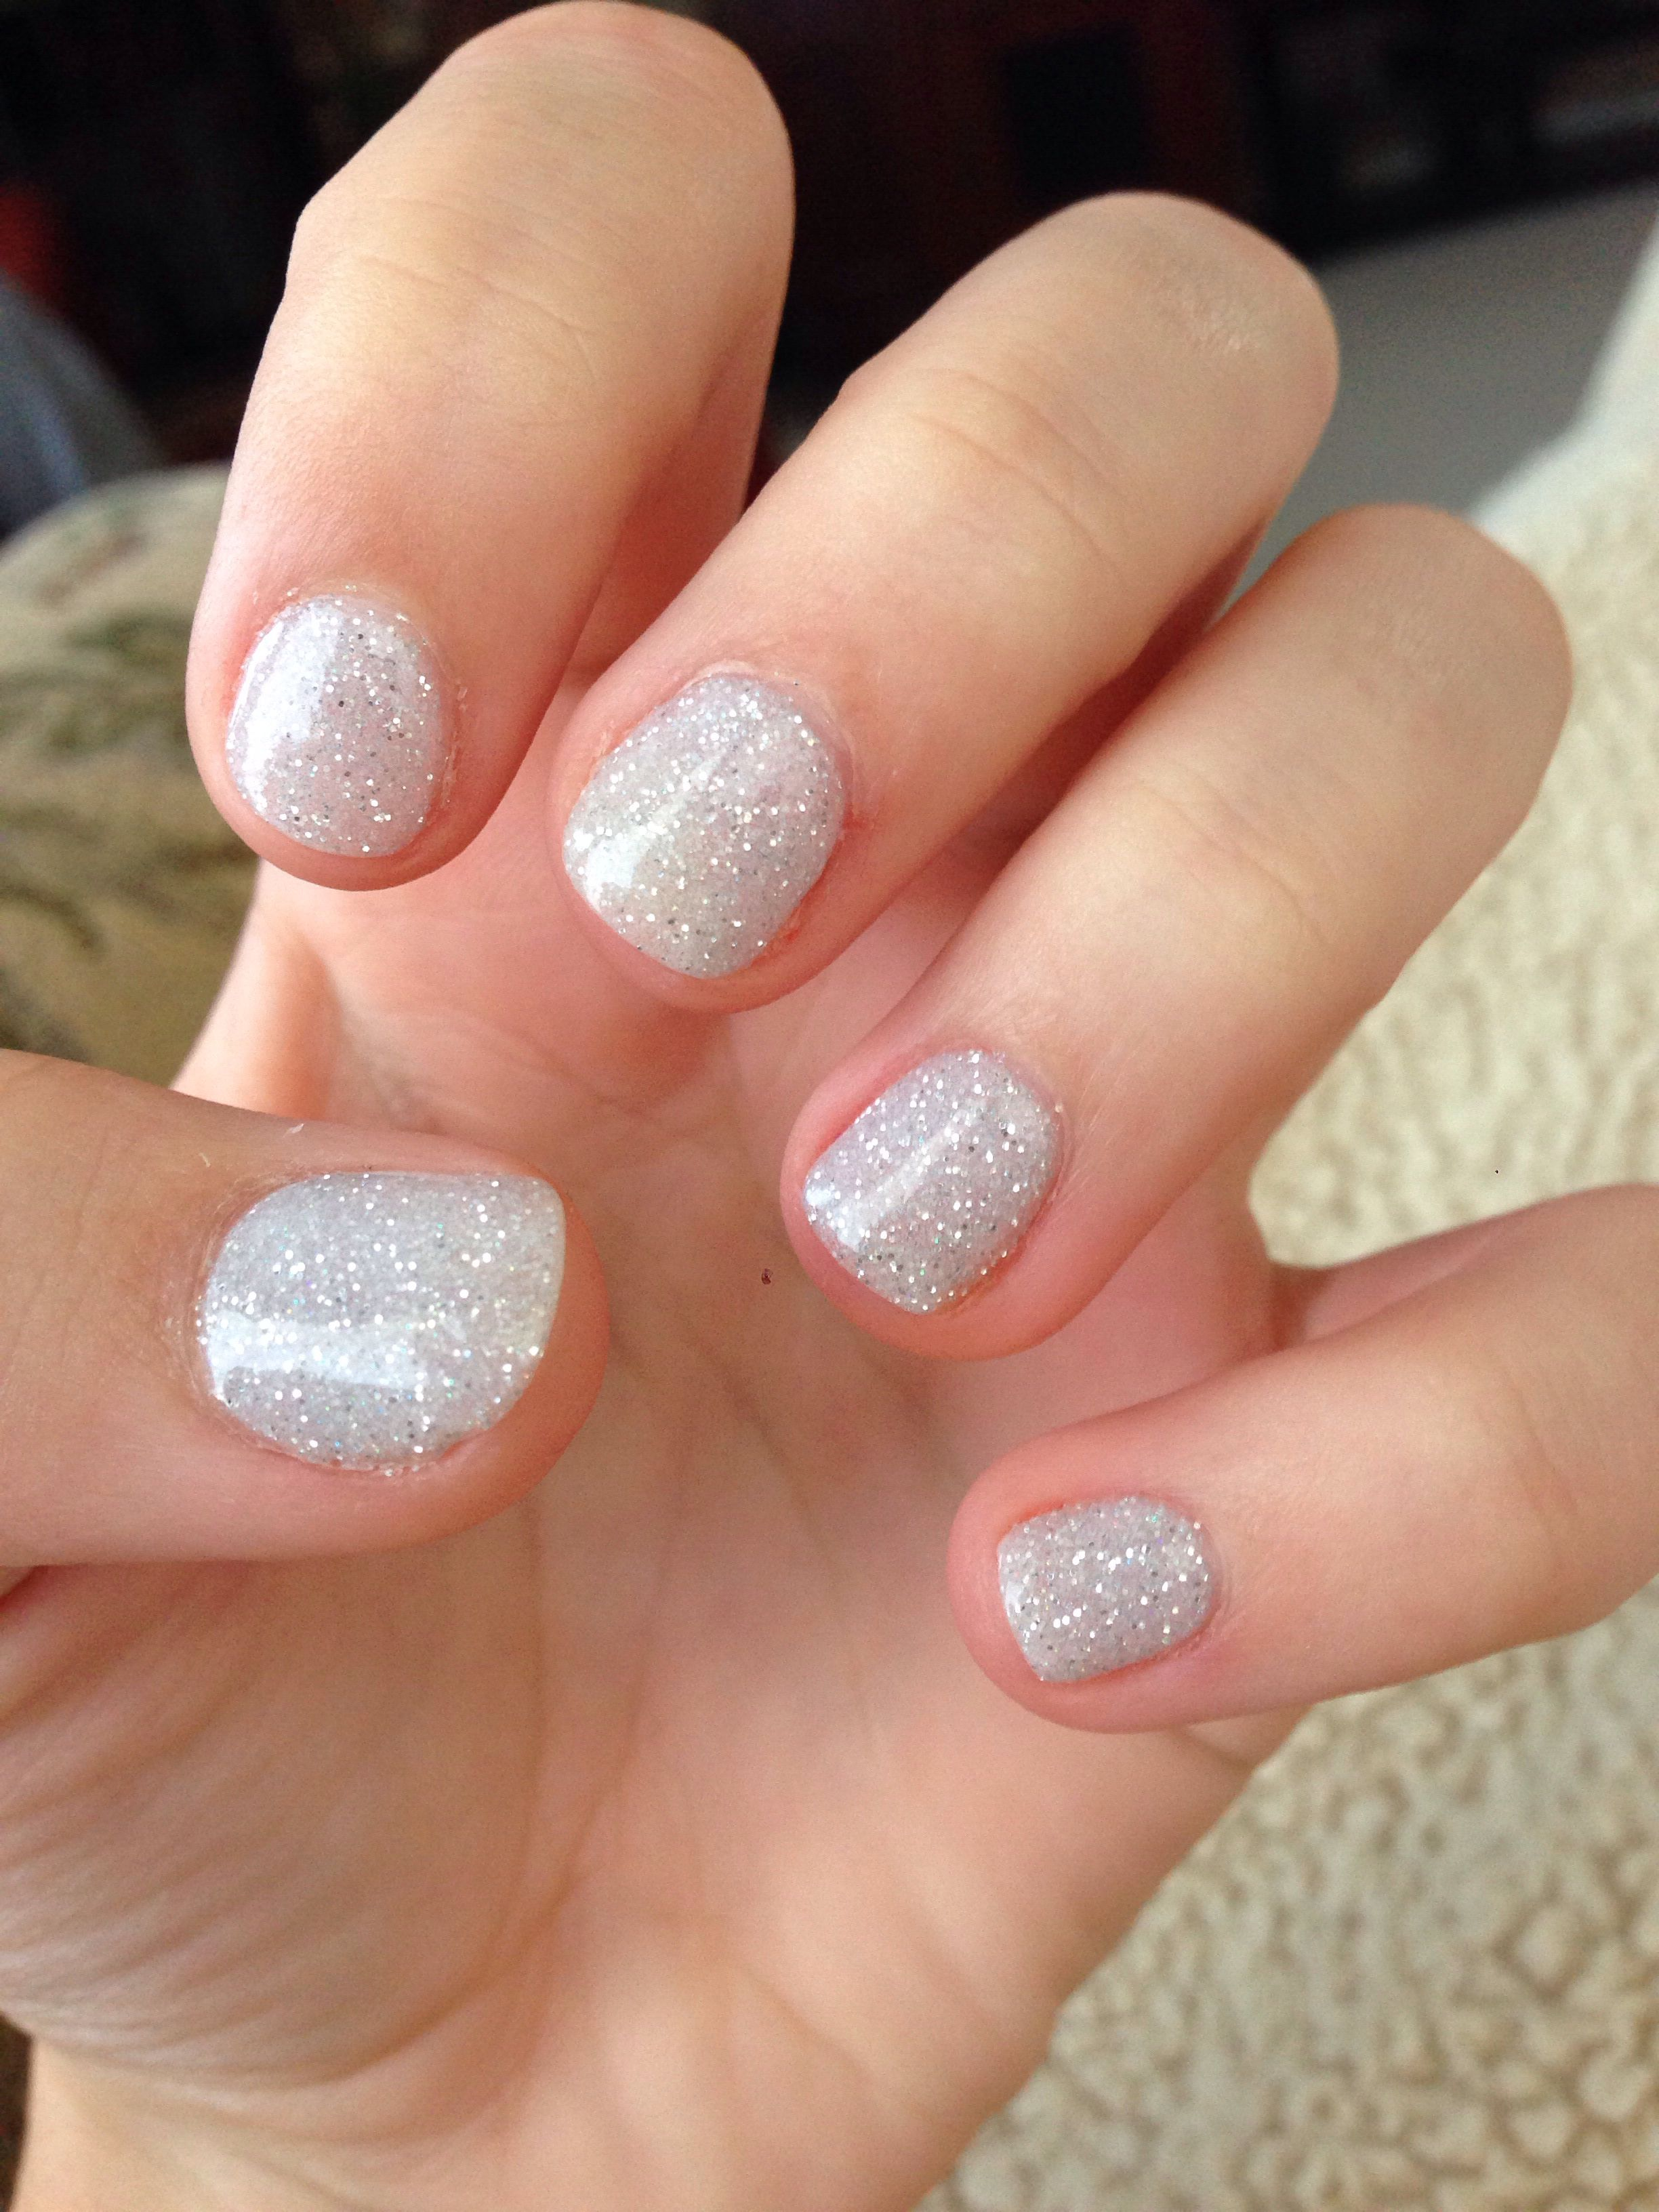 Nexgen nail... they look like mine. short but lovely | Nails ...